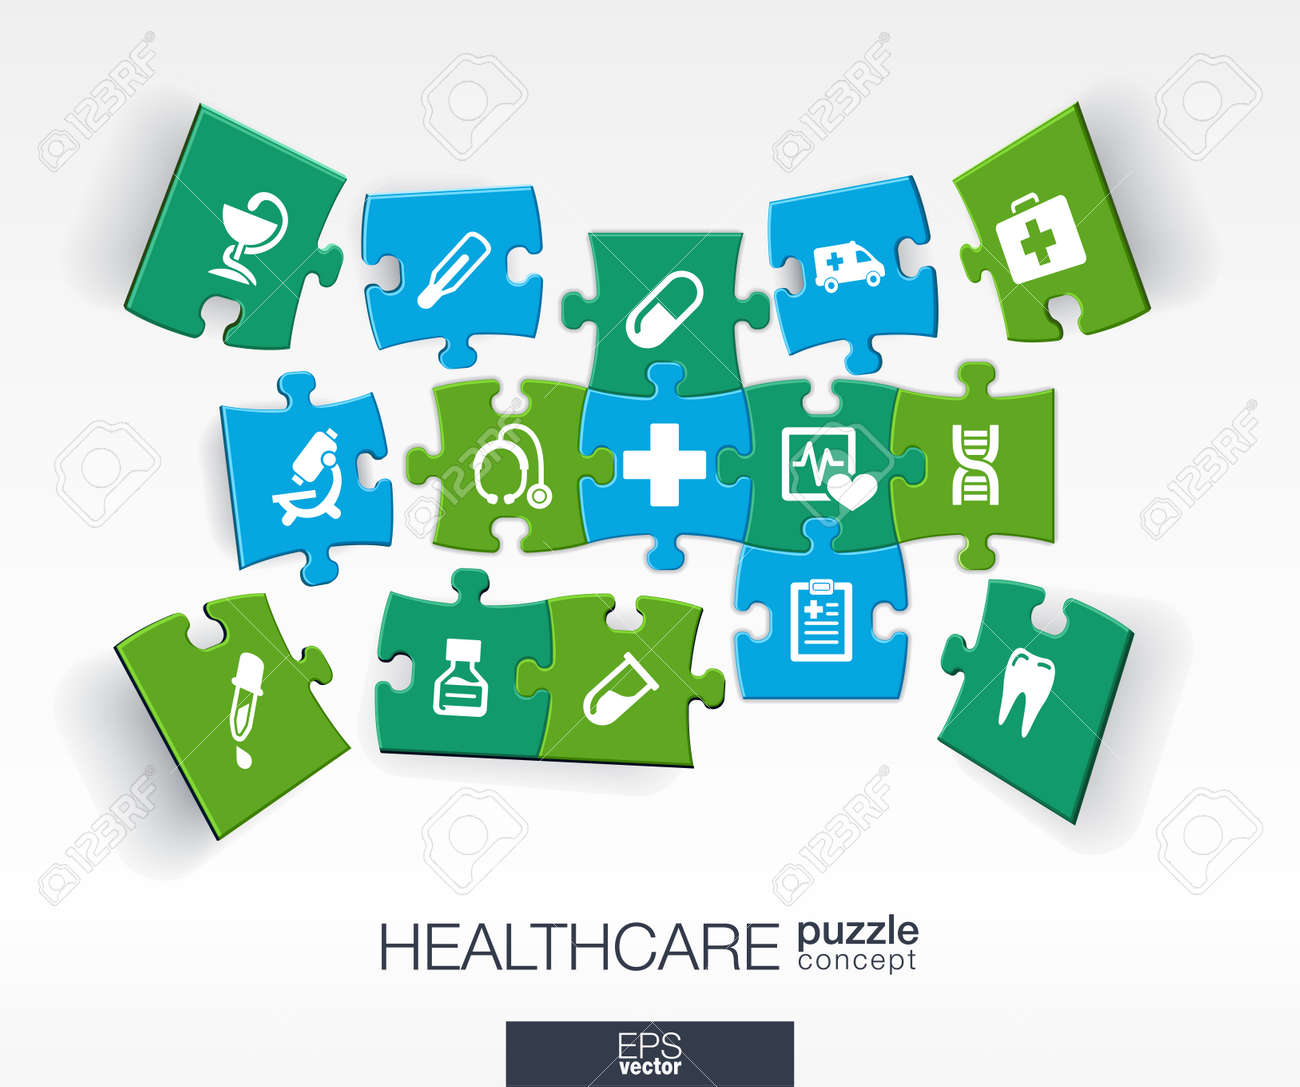 Abstract medicine background with connected color puzzles integrated flat icons. 3d infographic concept with medical health healthcare cross pieces in perspective. Vector interactive illustration. Stock Vector - 41722588